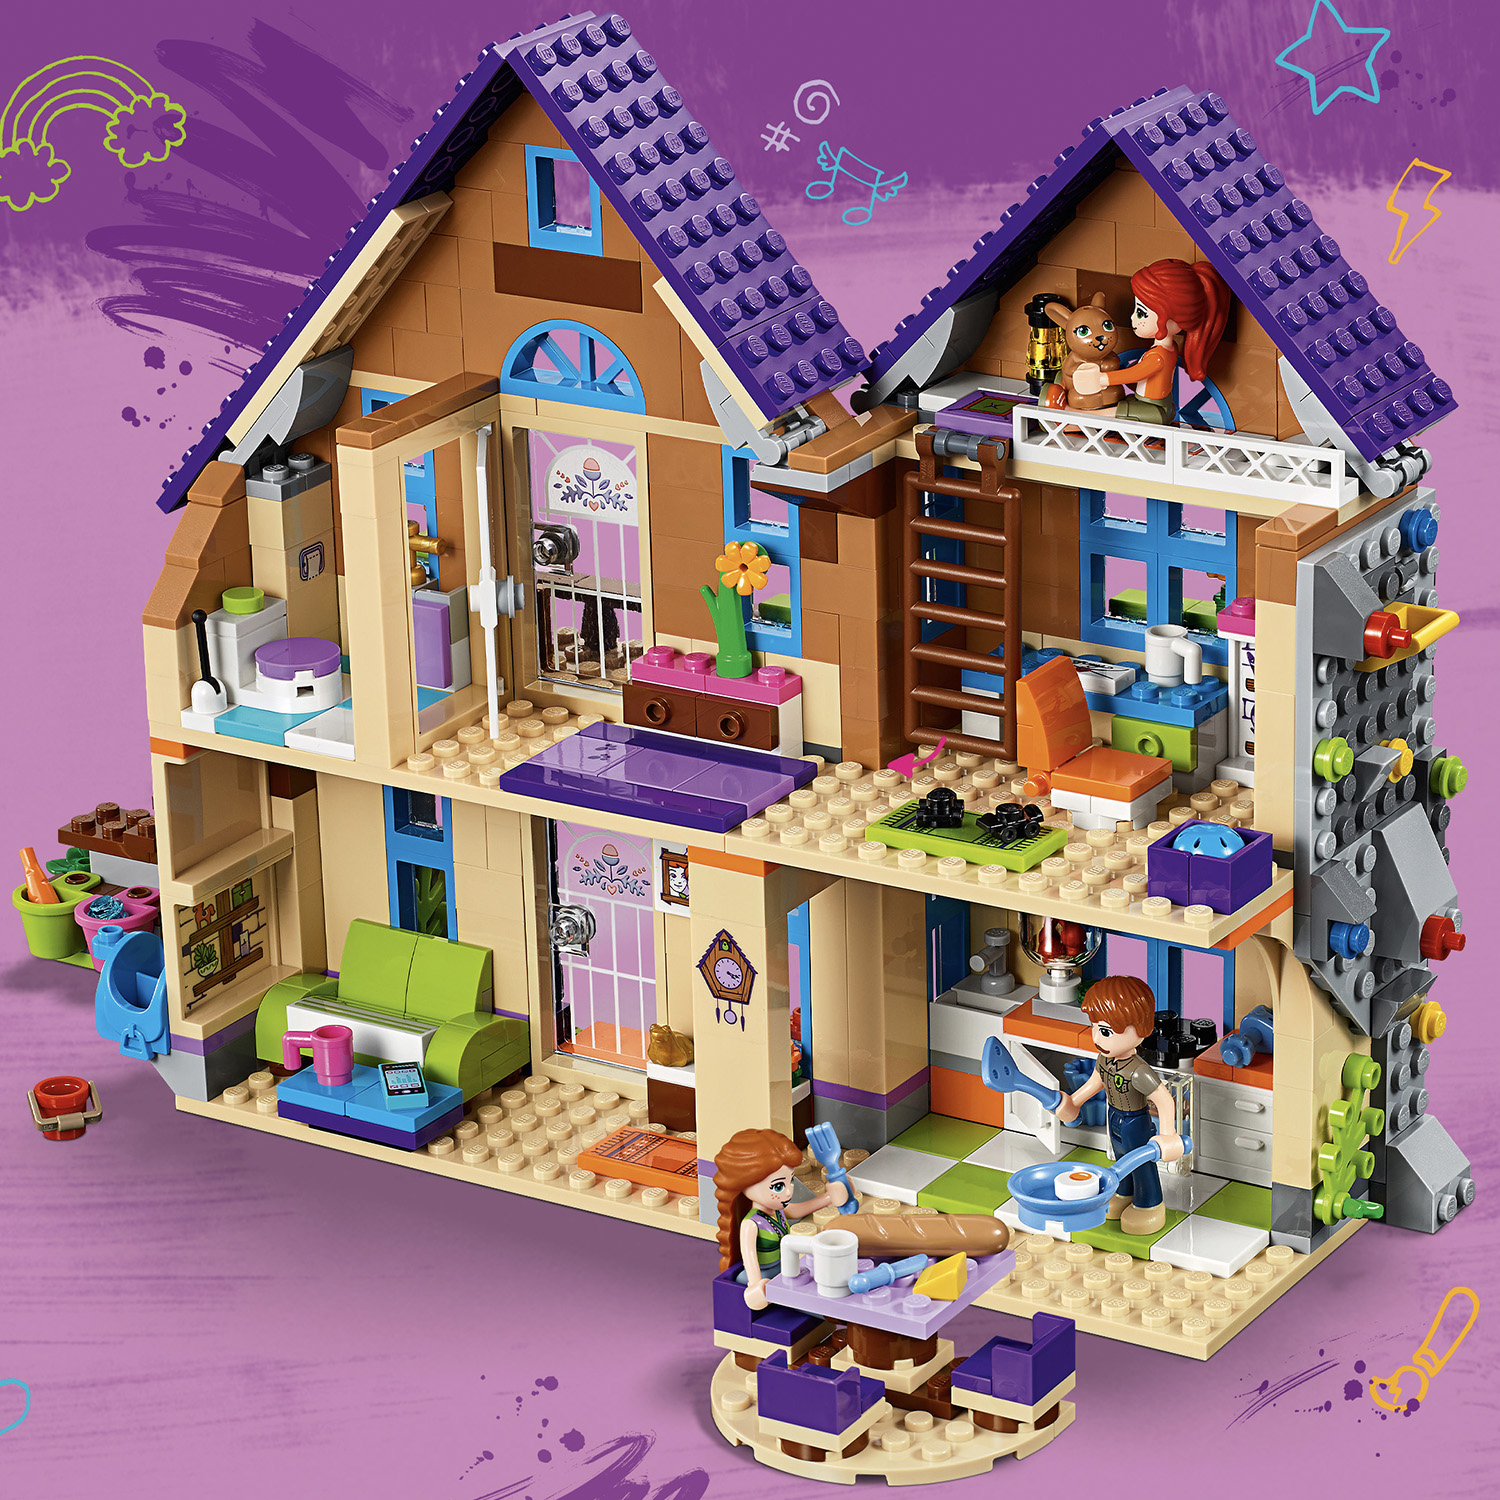 41369 LEGO Friends Mia's House 715 Pieces Age 6+ New ...